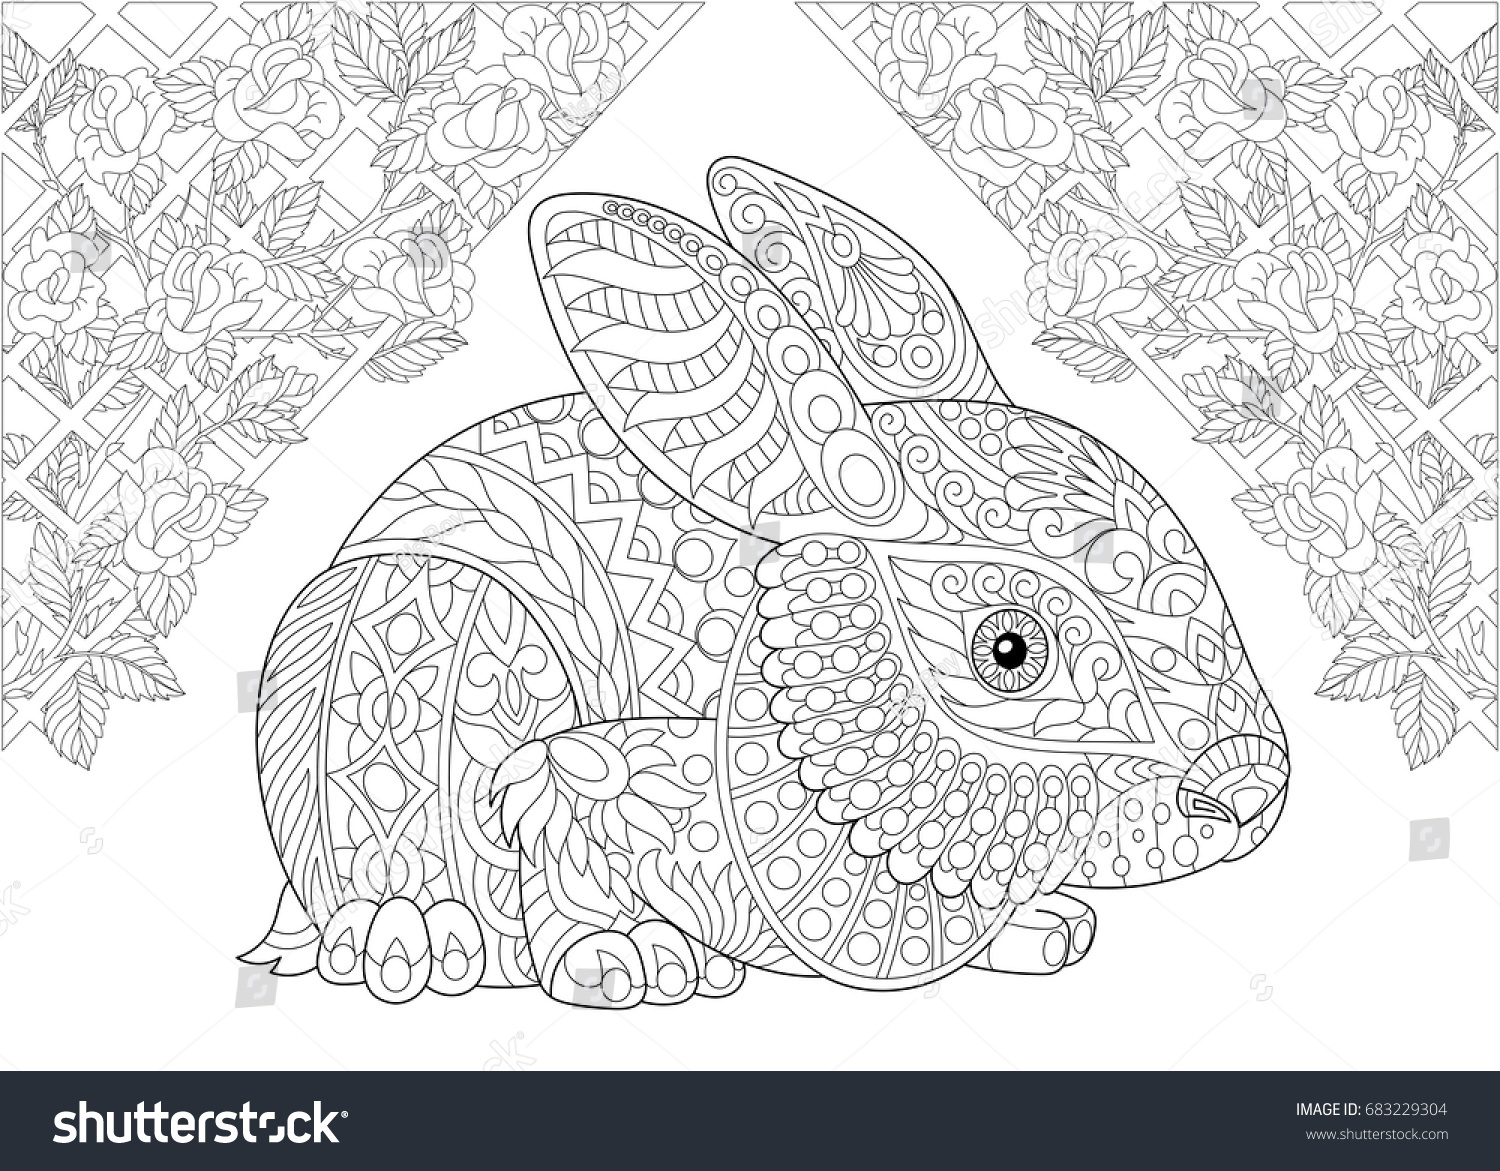 Coloring Page Rabbit Wonderland Rose Flowers Stock Photo (Photo ...